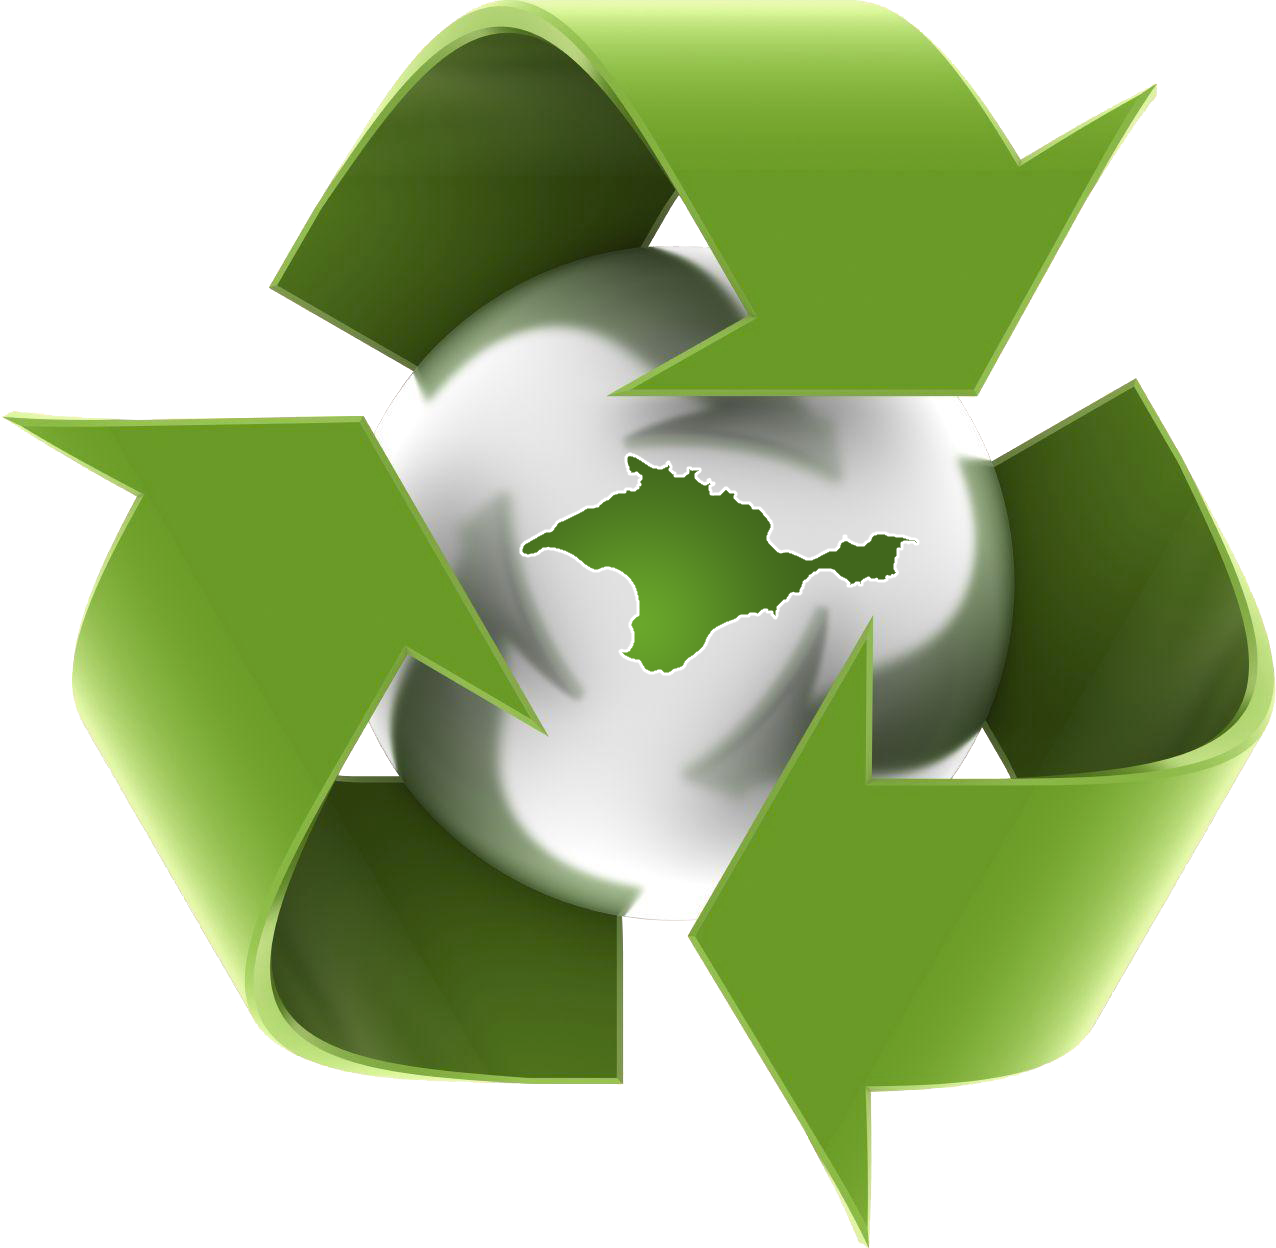 Bin Symbol Recycling Baskets Paper Minimisation Rubbish PNG Image